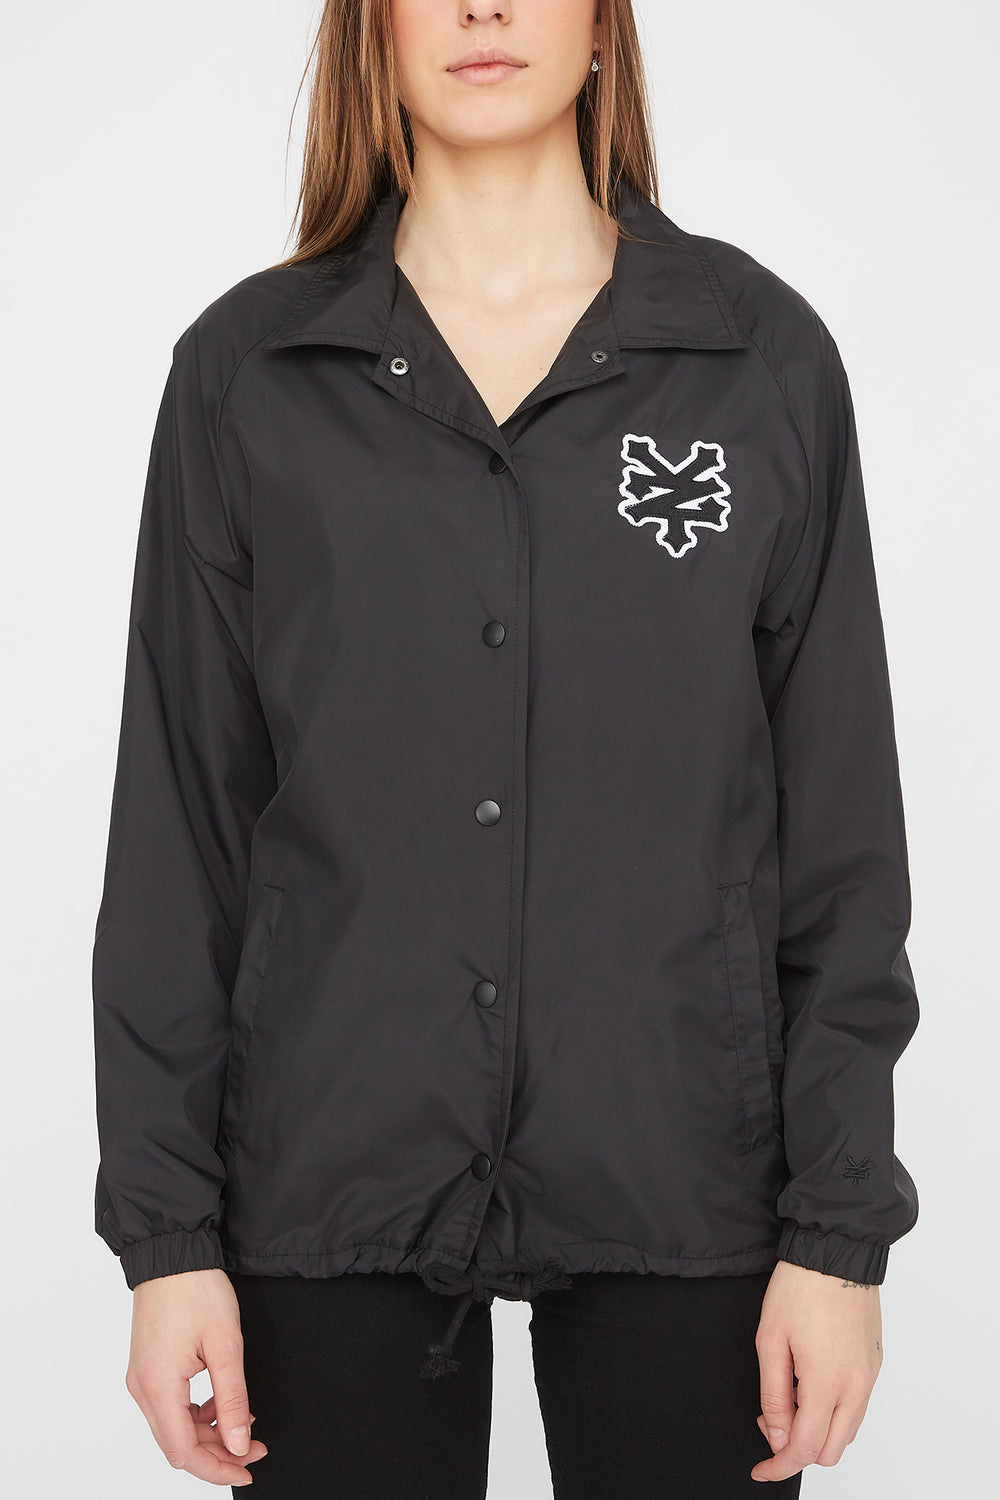 Zoo York Womens Patch Logo Coach Jacket Black